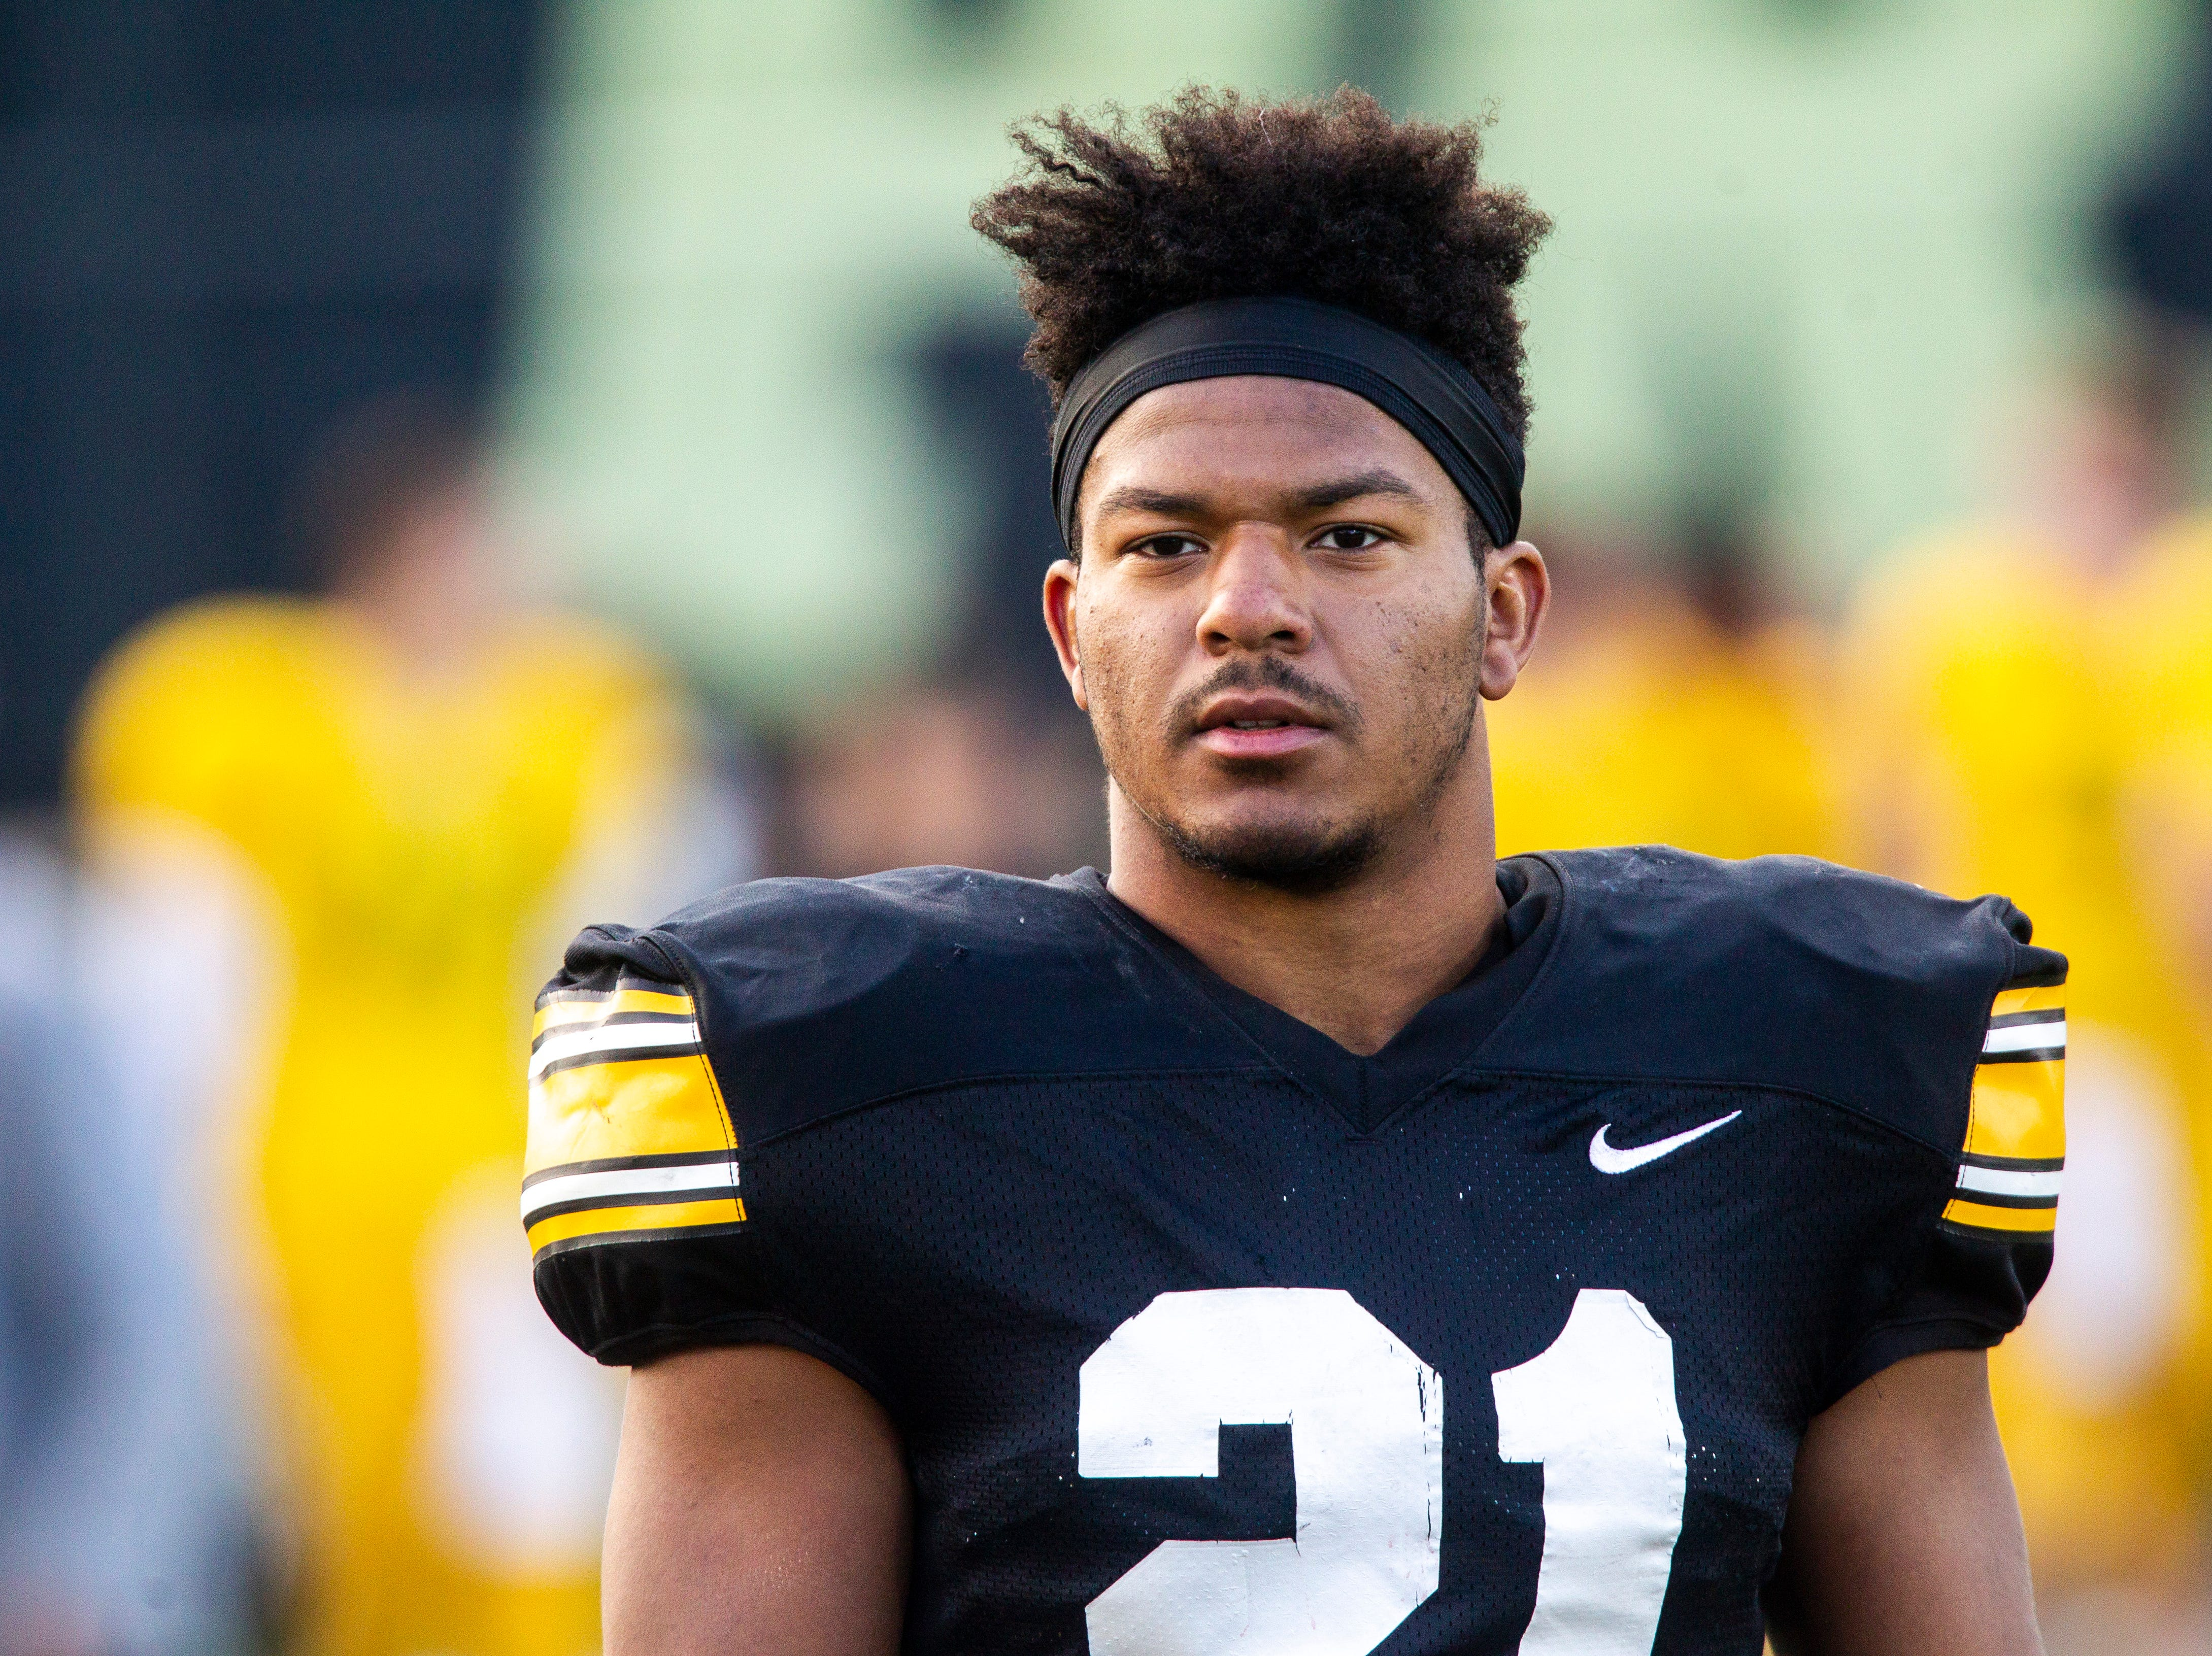 Iowa running back Ivory Kelly-Martin (21) is pictured during the final spring football practice, Friday, April 26, 2019, at the University of Iowa outdoor practice facility in Iowa City, Iowa.